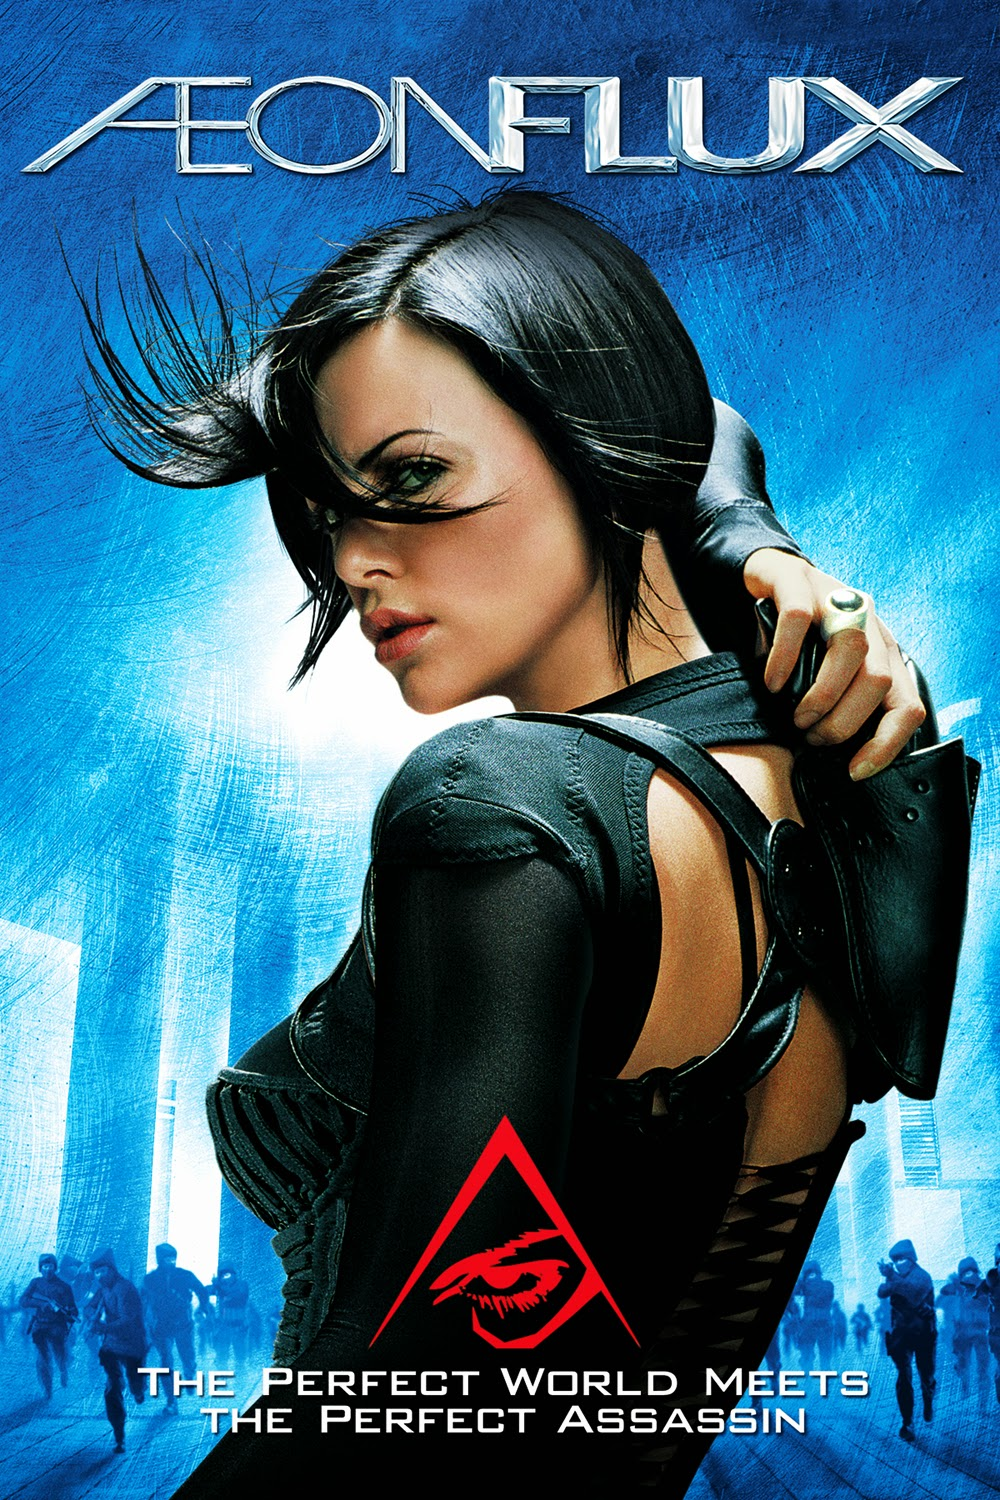 Aeon Flux Movie Watch Online Free In Hindi And Urdu Full Movie Link